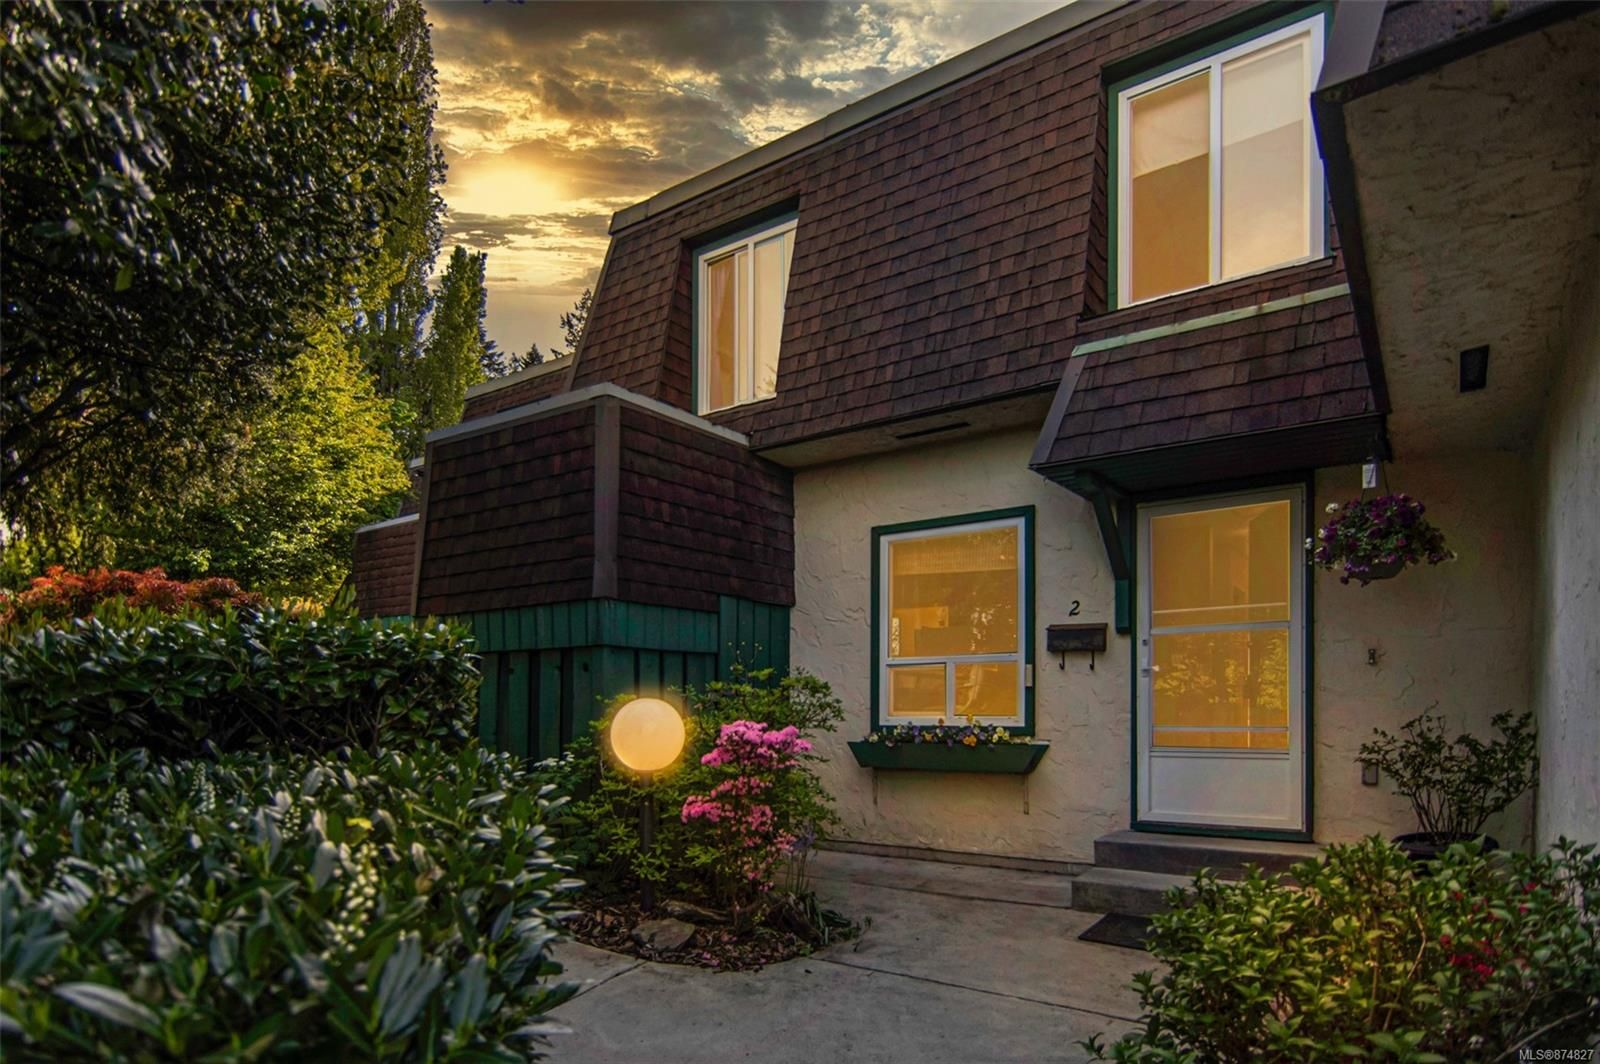 Main Photo: 2 2725 Wale Rd in : Co Colwood Corners Row/Townhouse for sale (Colwood)  : MLS®# 874827